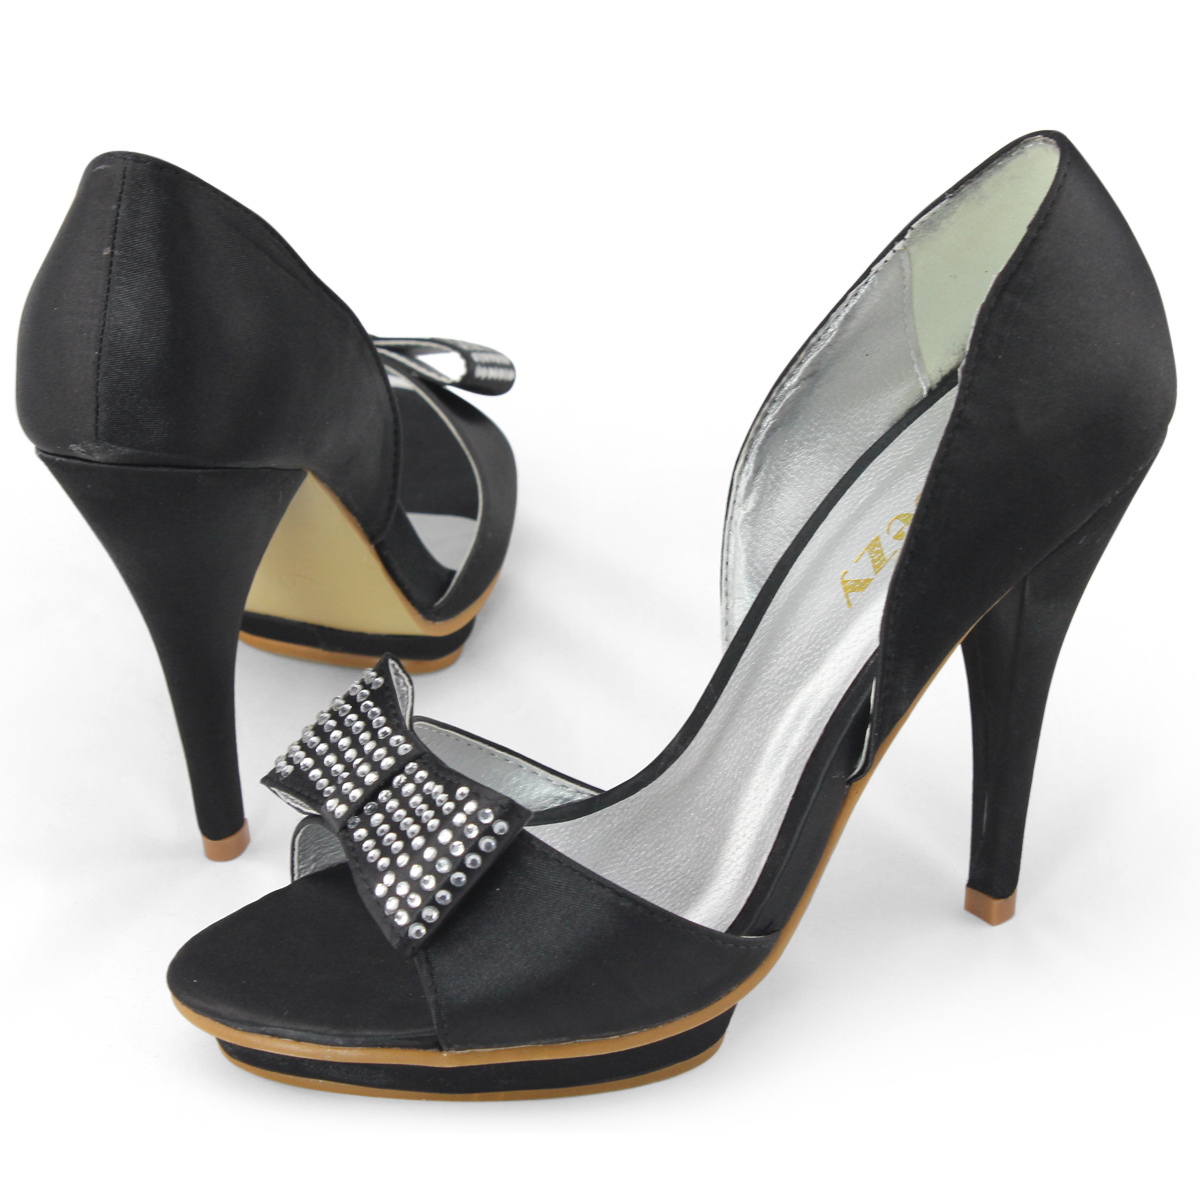 We offer stiletto pumps, peep toe pumps, and dressy pumps and more. We use cookies to provide you with the best possible experience. Wedding Shoes Women's Dance Shoes Boots Pumps Sandals Flats Wedges Platforms Sneakers & Athletic. Silk Like Satin Stiletto Heel Pumps Closed Toe US$ US$ (0) favor.